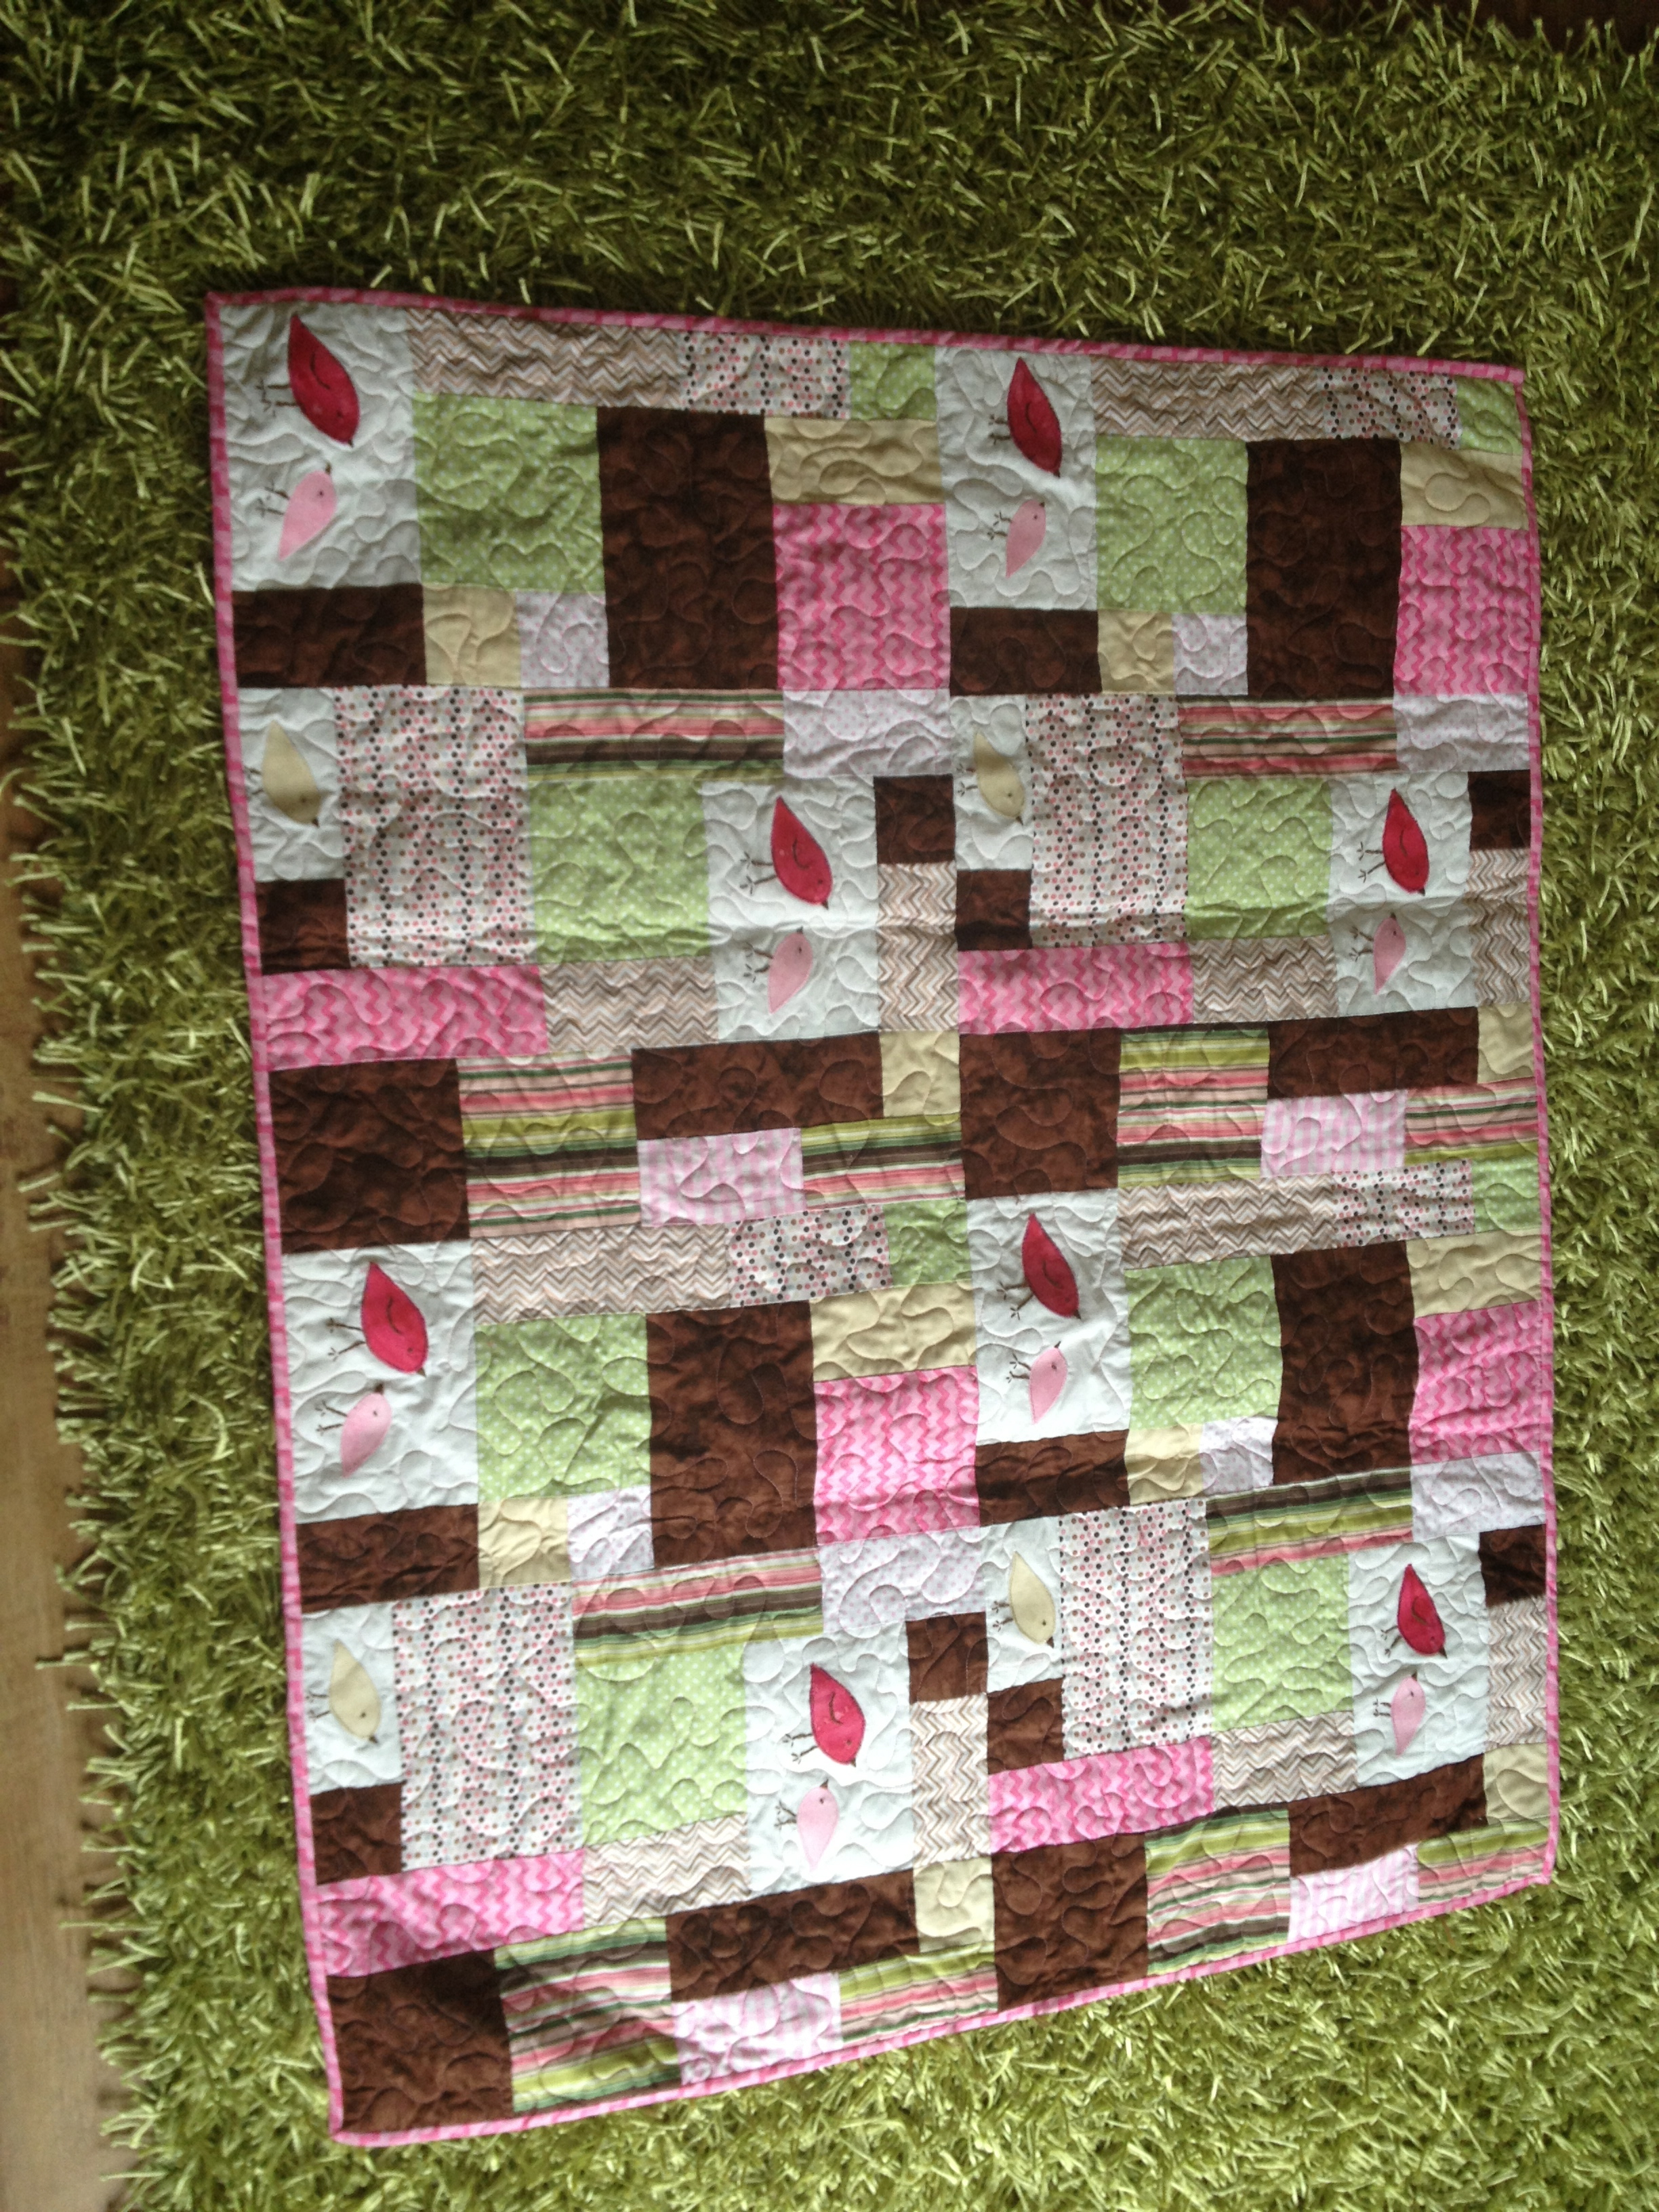 My First Quilt & Bonding with my Mother